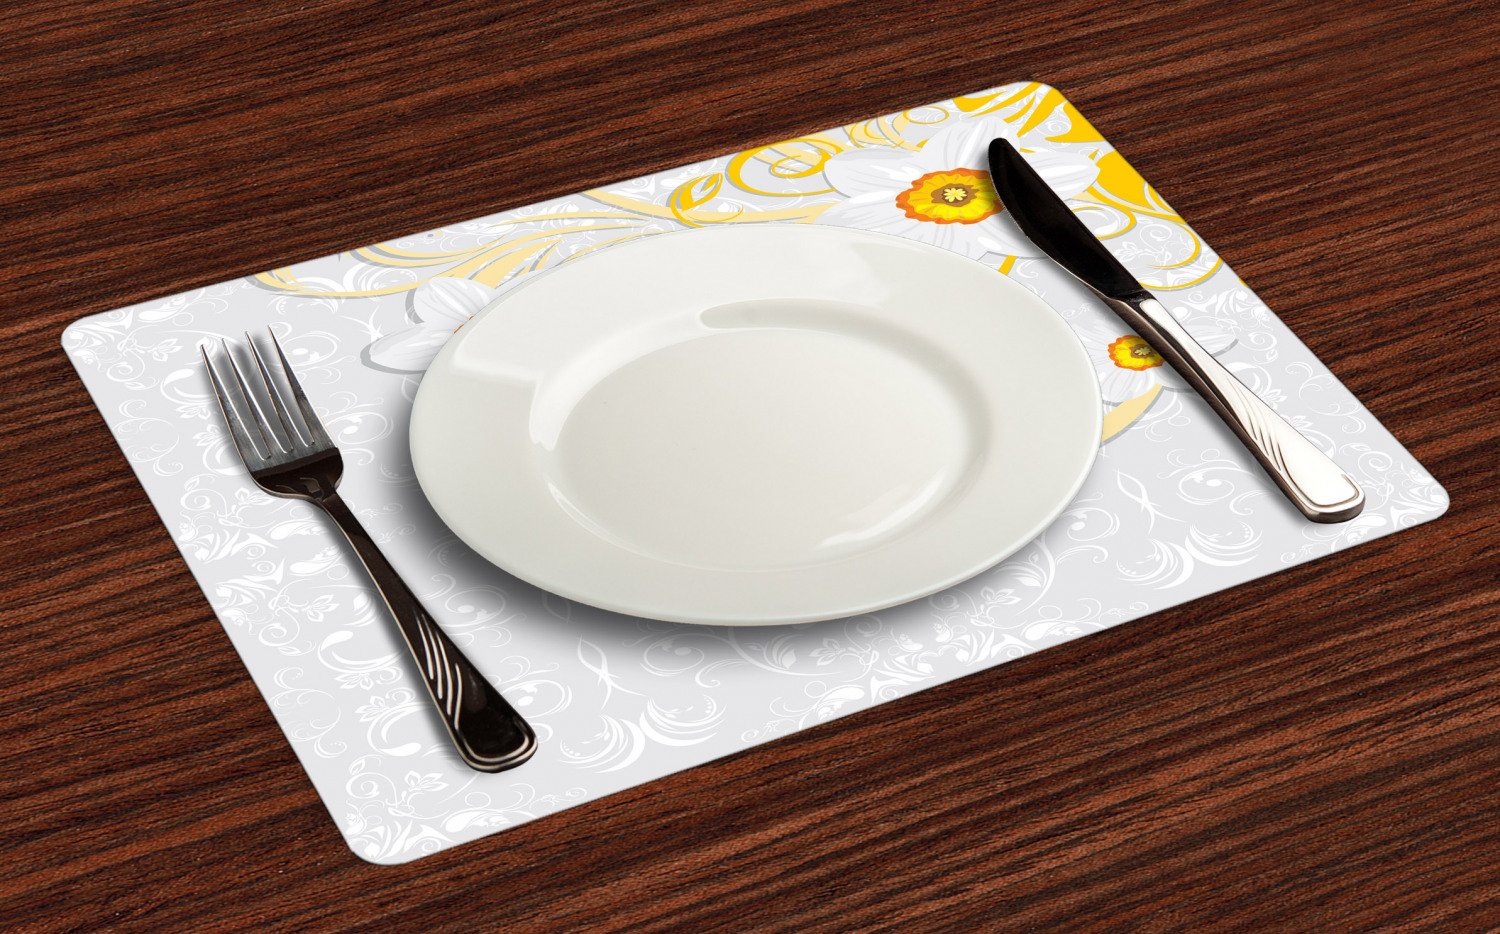 Ambesonne-Flower-Pattern-Placemat-Set-of-4-Fabric-Place-Mats-for-Table-Decor thumbnail 69